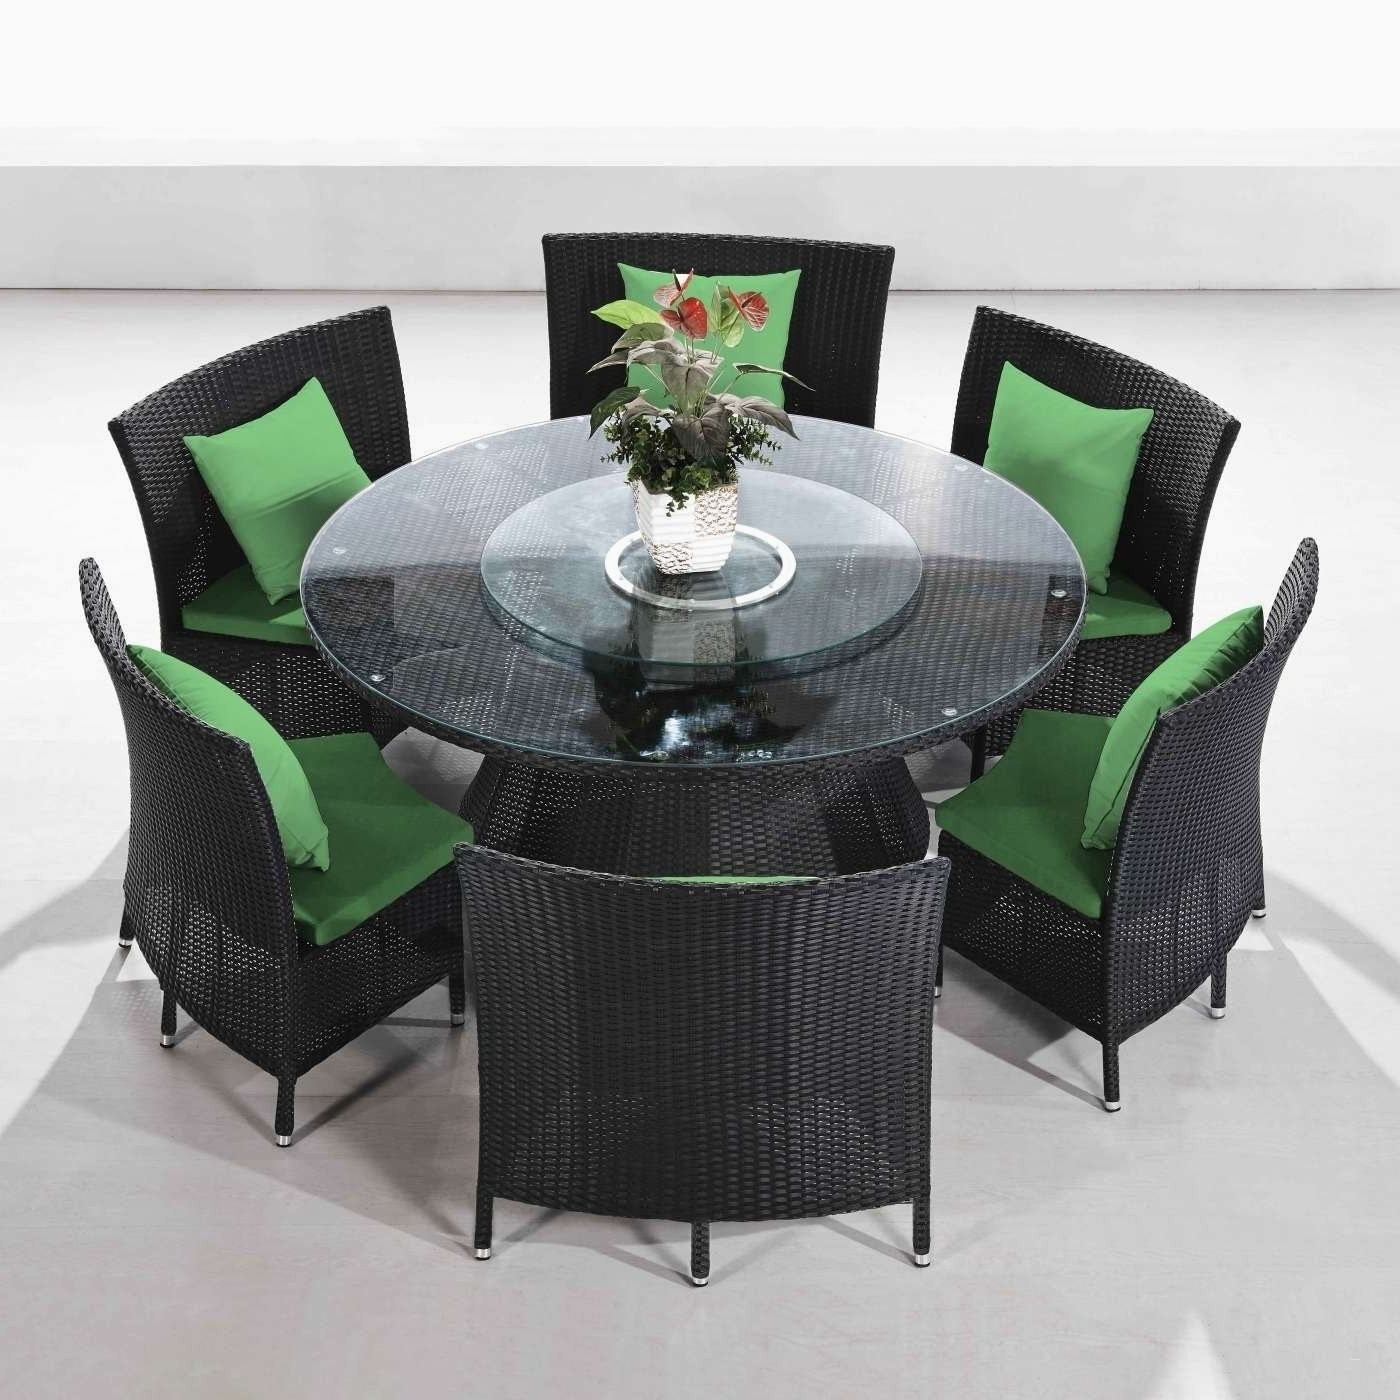 Newest Round Dining Table For 6 Elegant 6 Seat Round Dining Table Lovely Throughout 6 Seat Round Dining Tables (View 18 of 25)